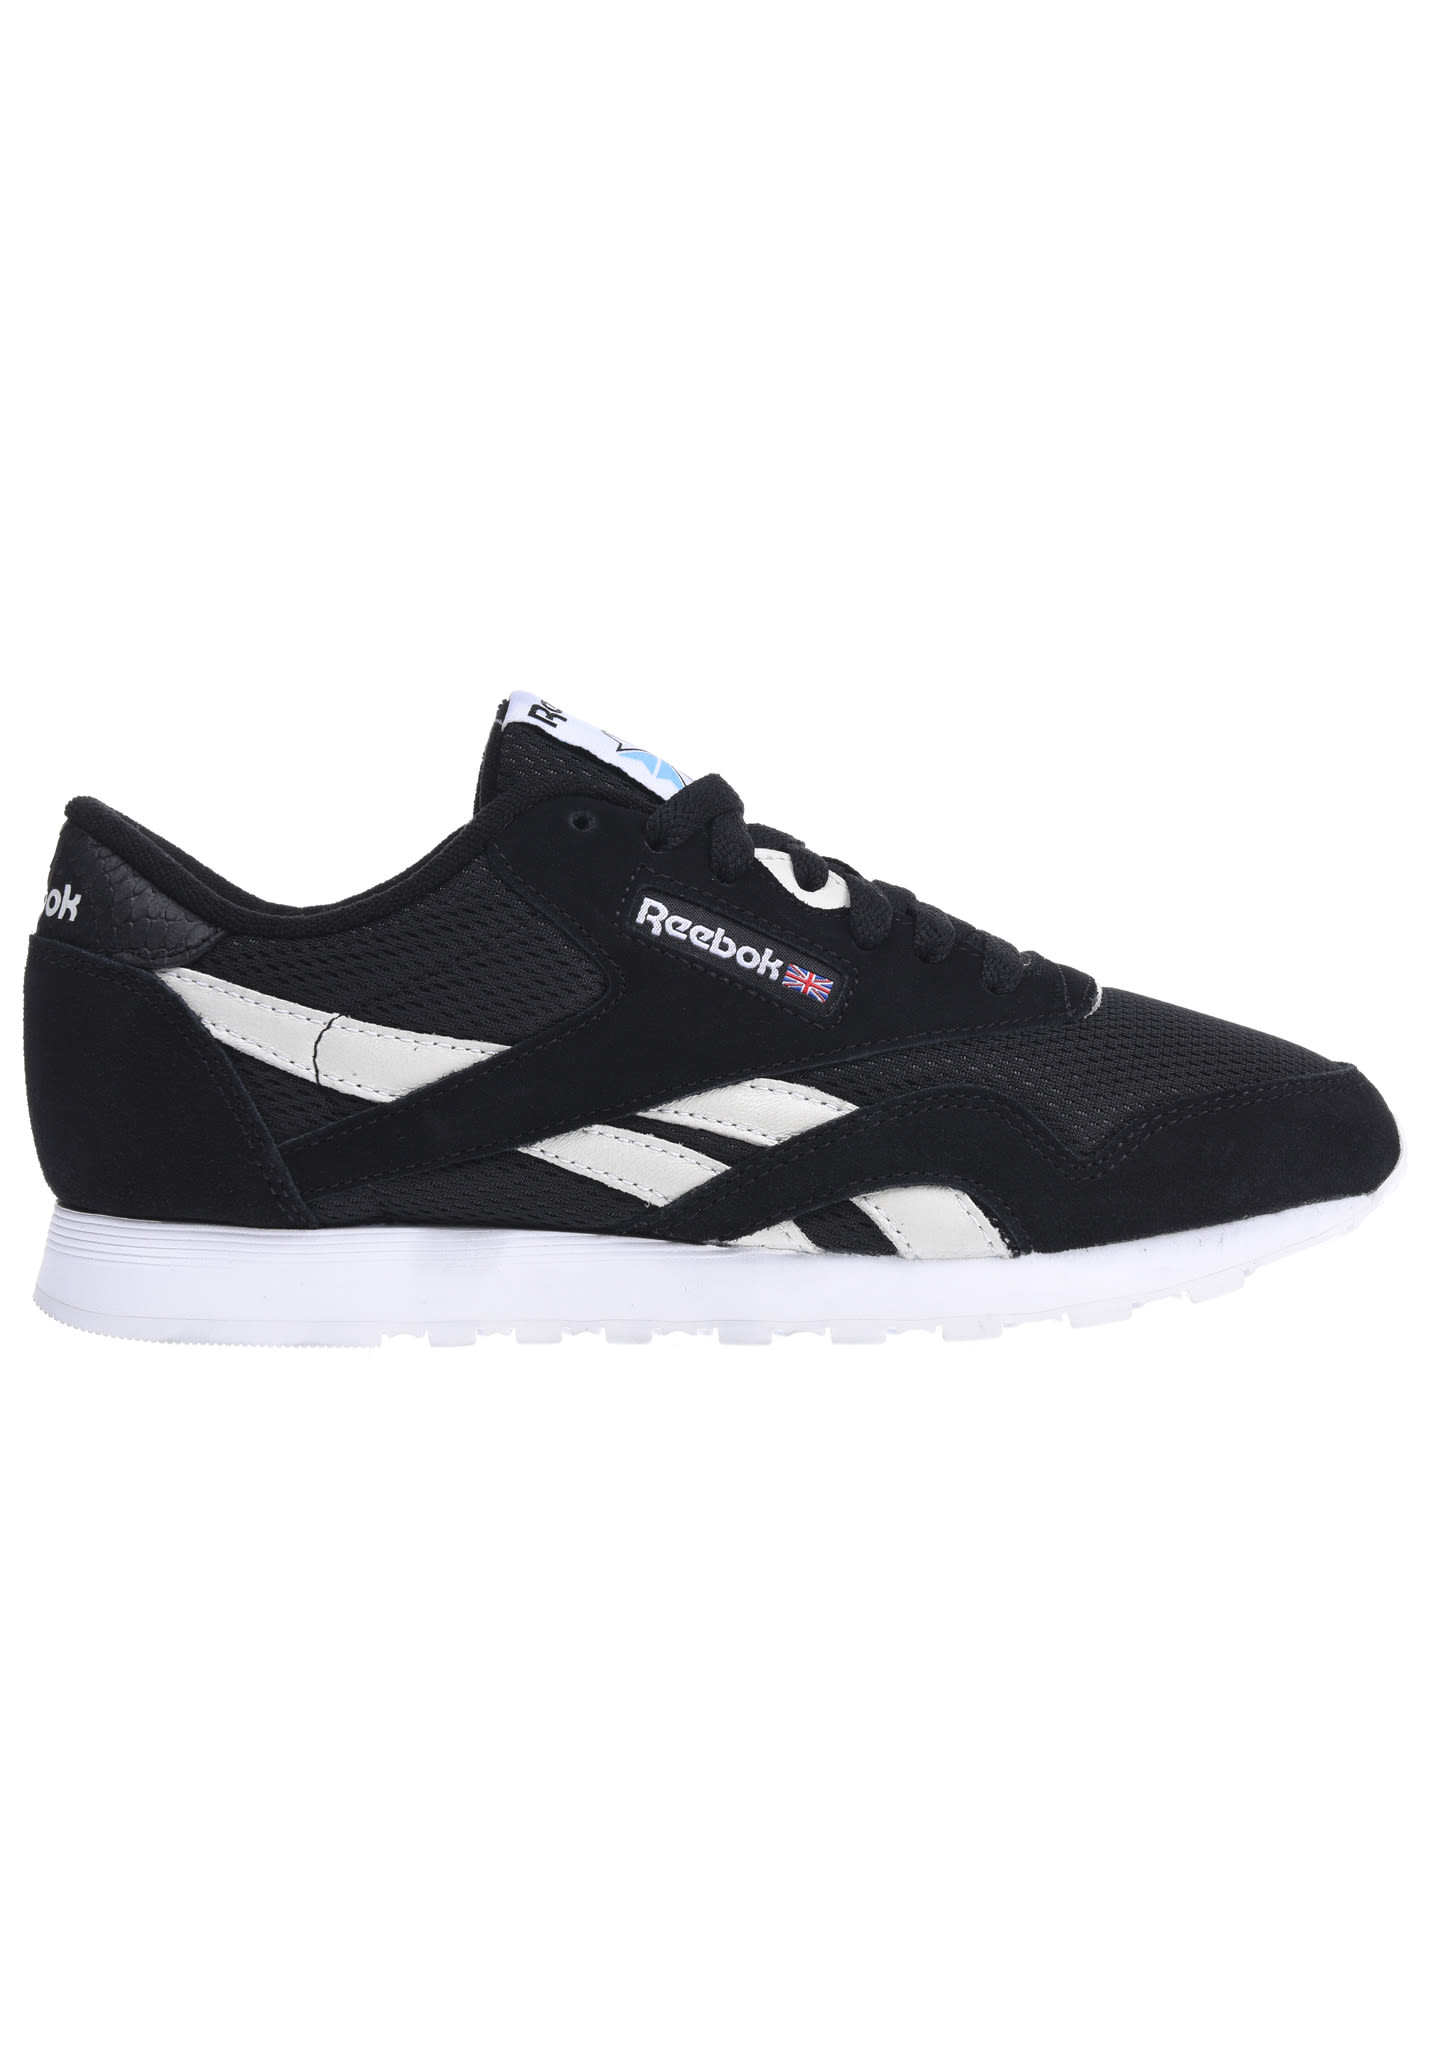 298c1584efd6c4 Reebok Classic Nylon FBT - Sneakers for Women - Black - Planet Sports